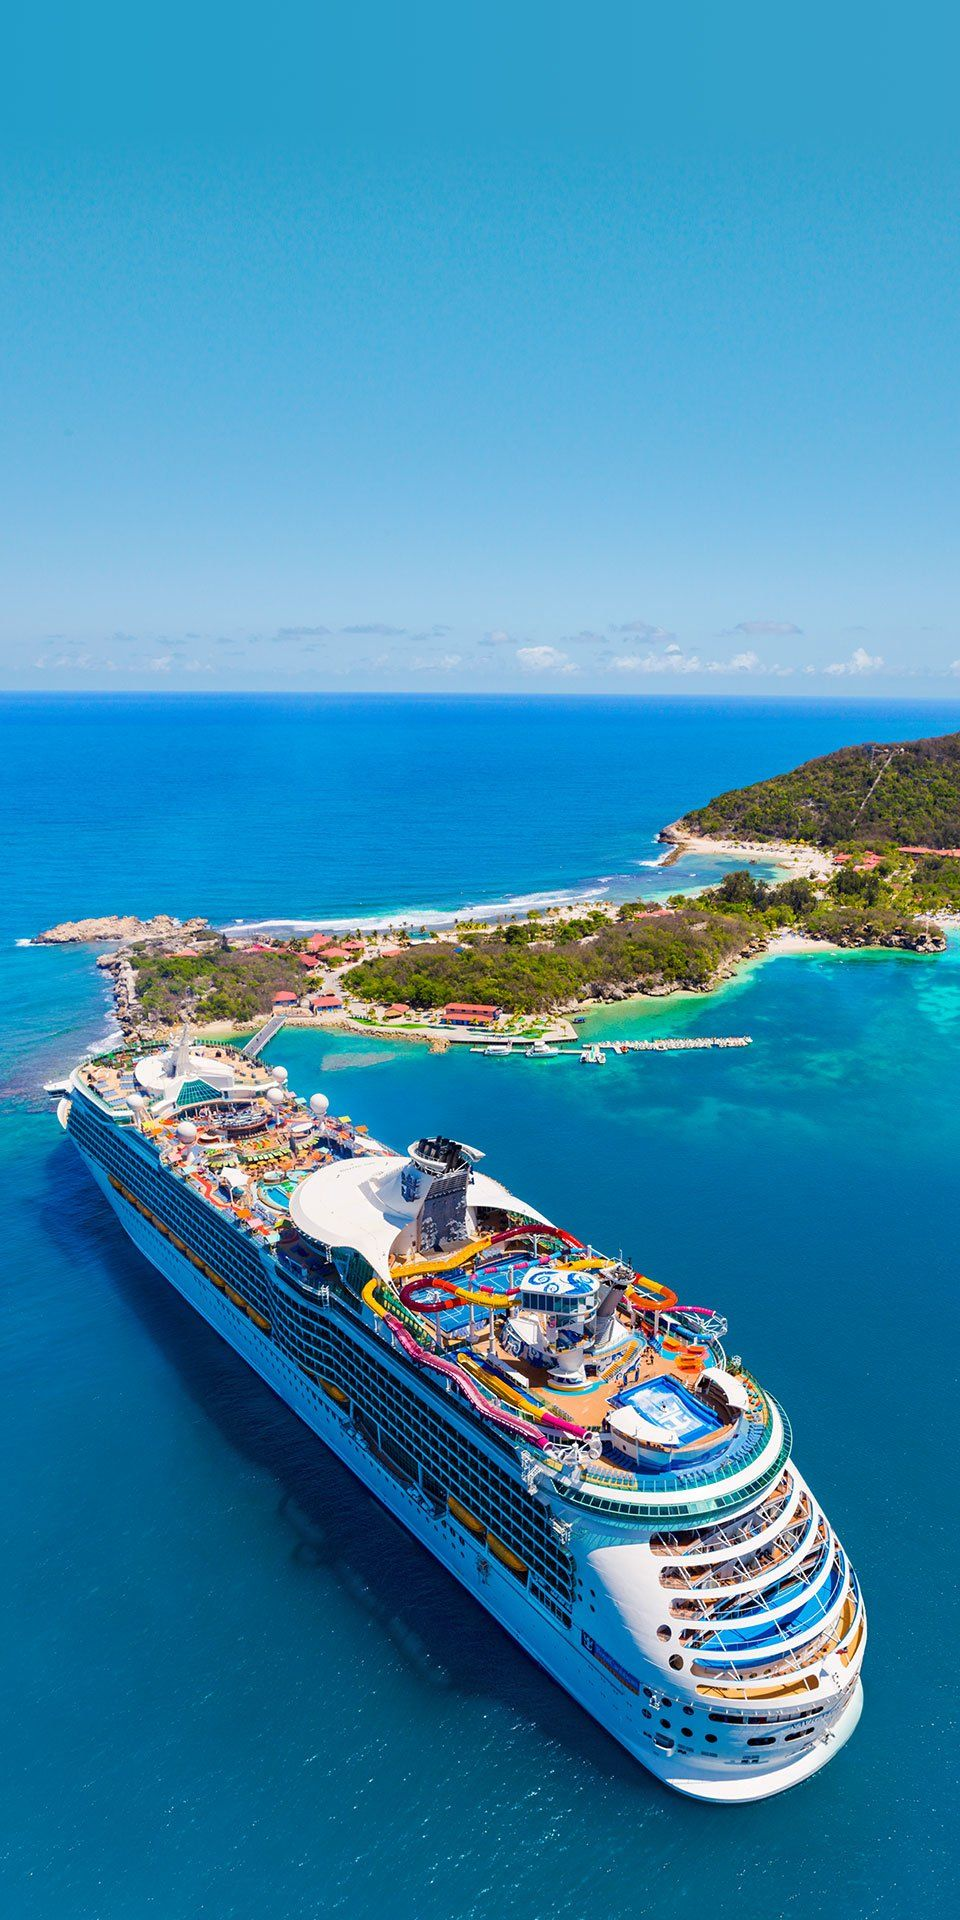 Navigator Of The Seas This Is Your Short Vacay Turned Way Way Up Only On Royal Caribbean Navigator Of The Seas Cruise Ship Caribbean Cruise